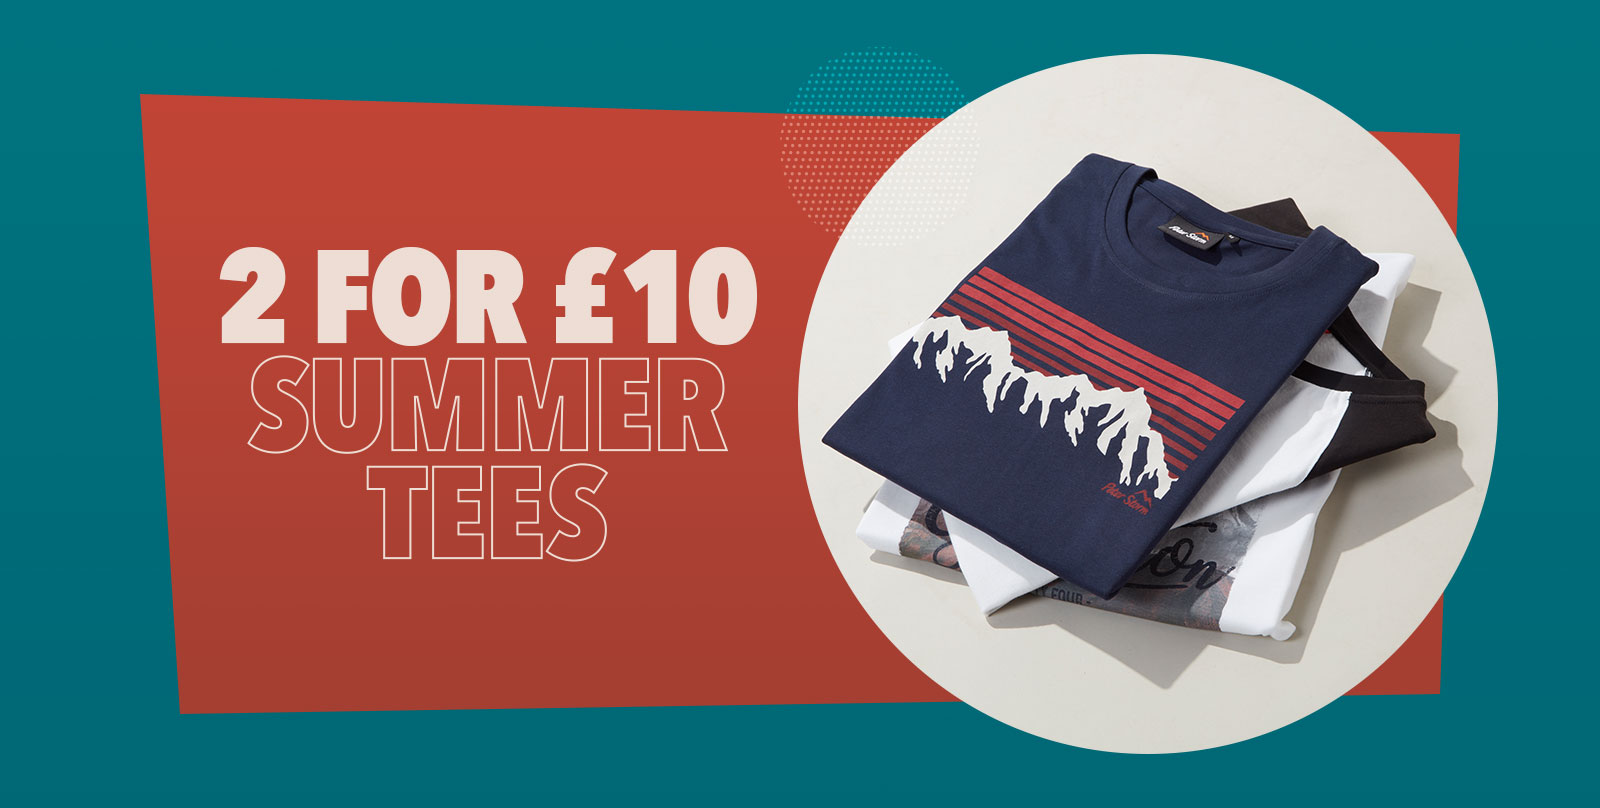 2 for £10 Summer Tees